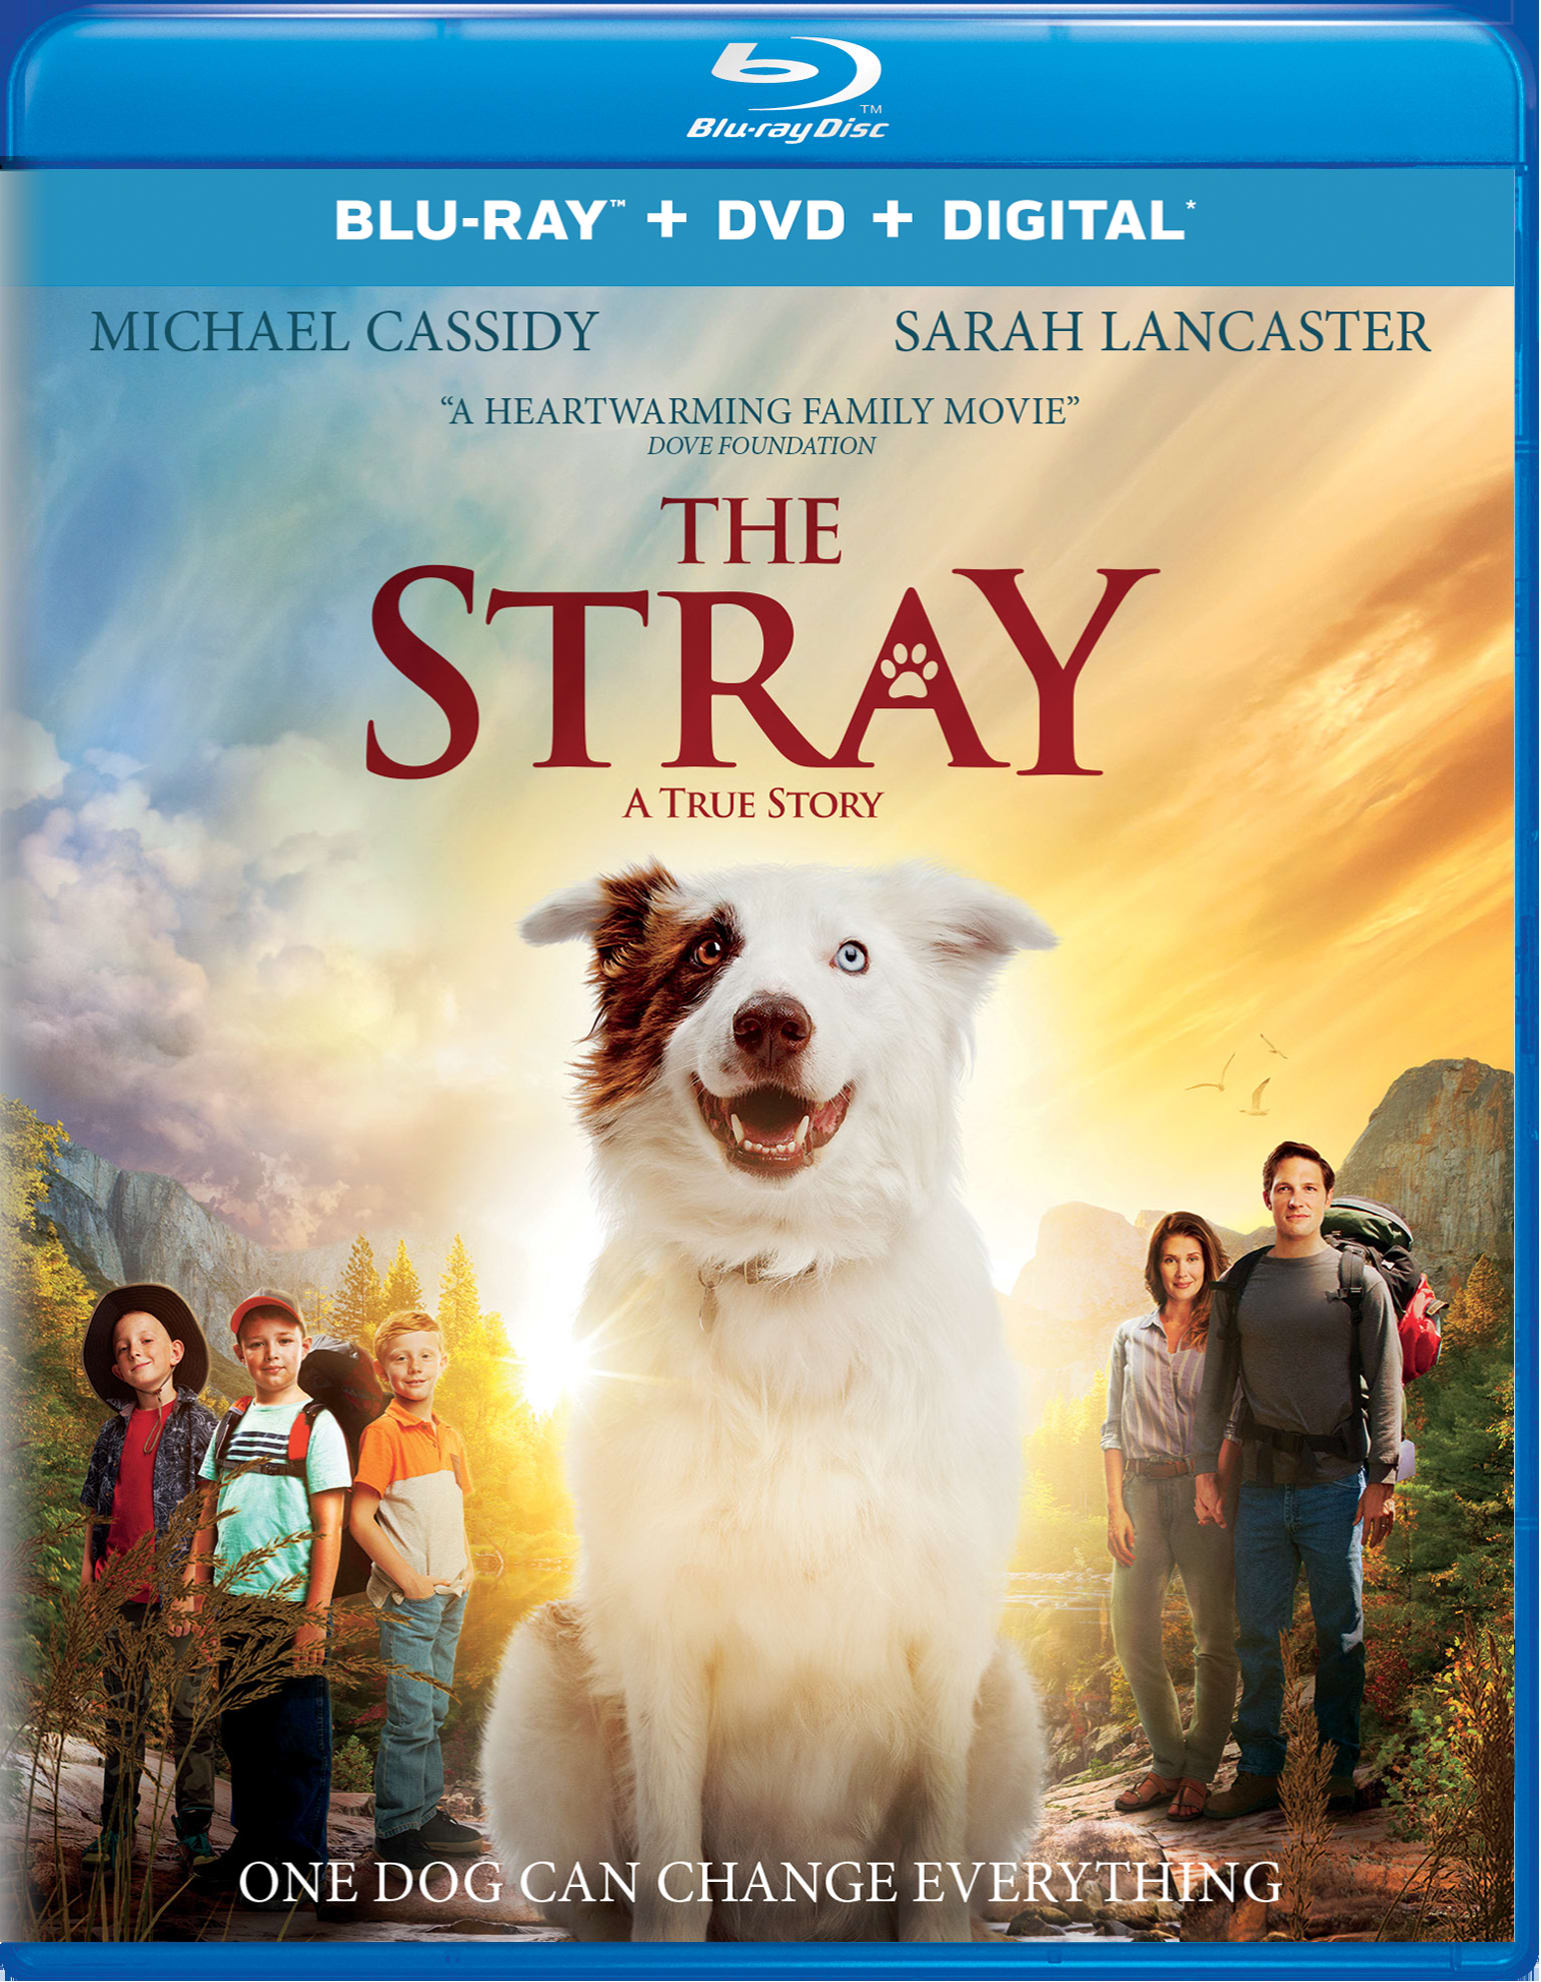 The Stray (DVD + Digital) [Blu-ray]